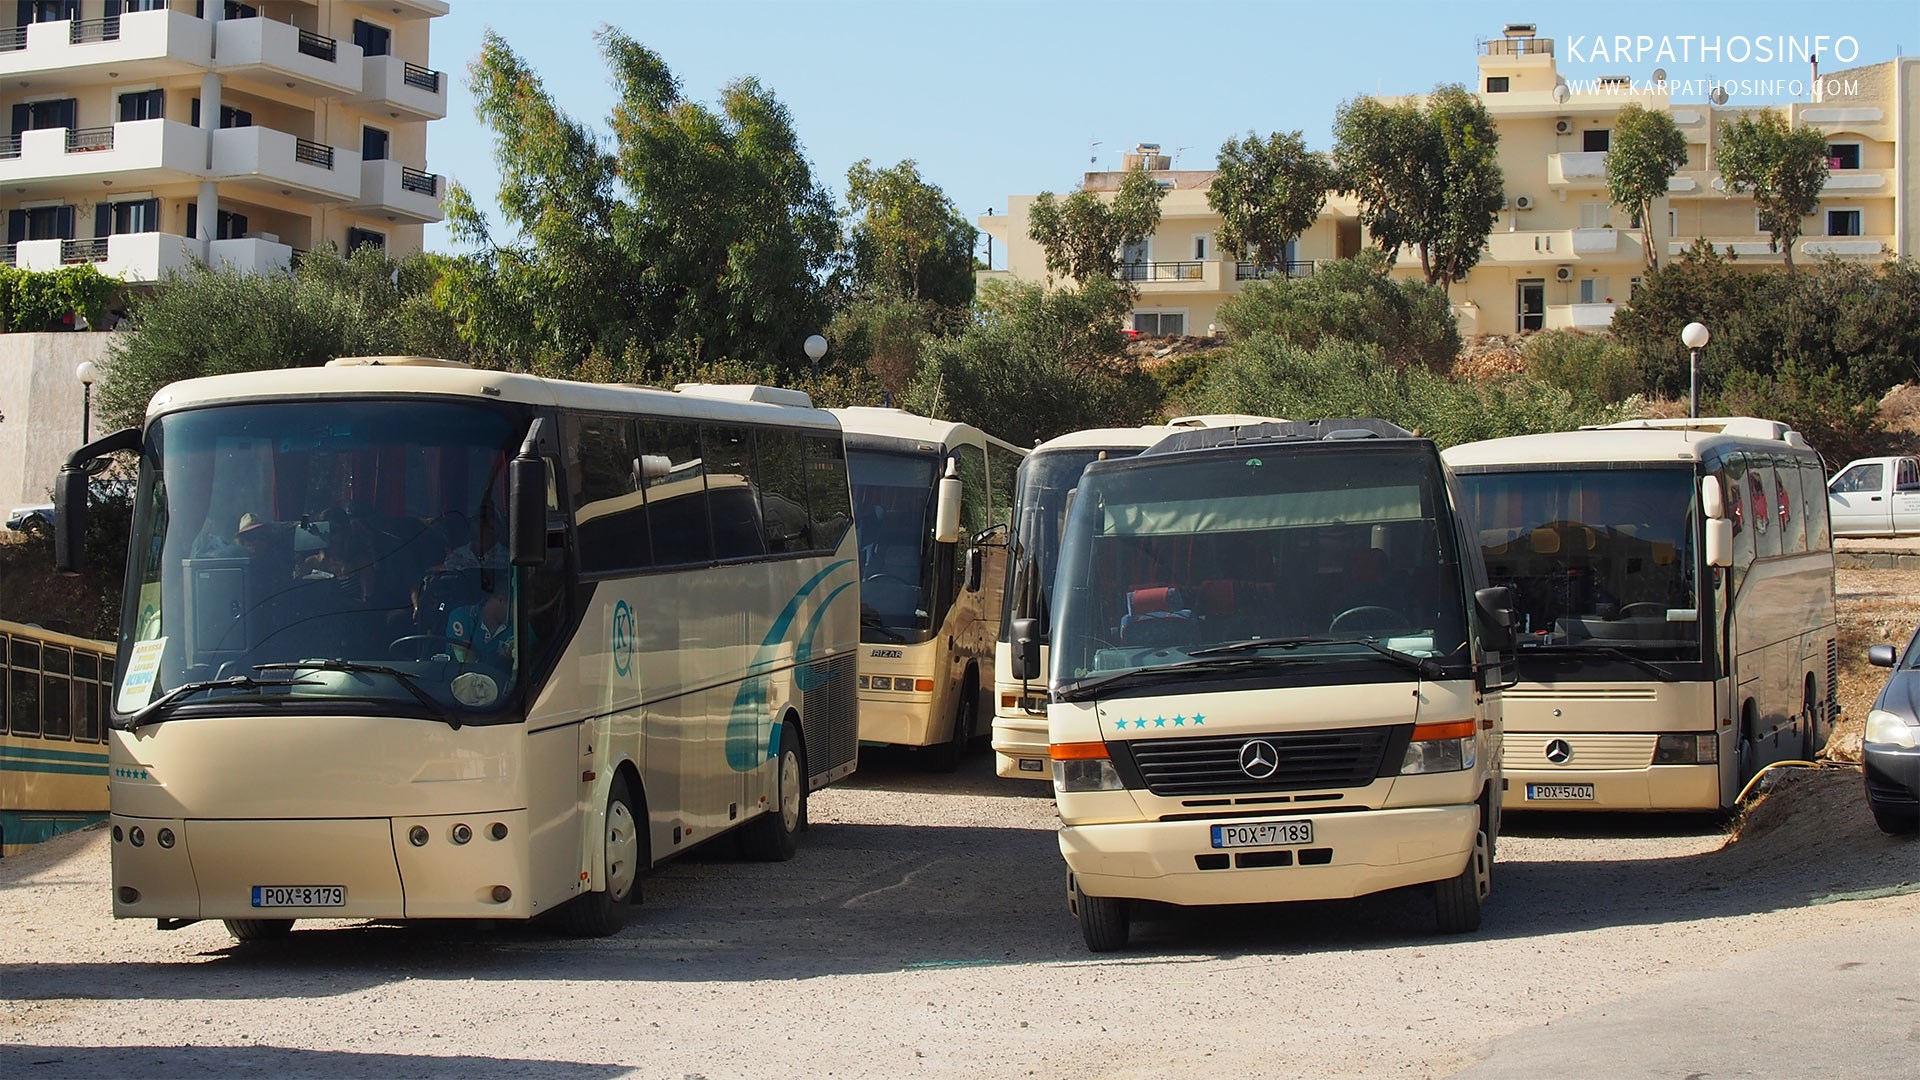 images/slider/karpathos-bus-slider.jpg